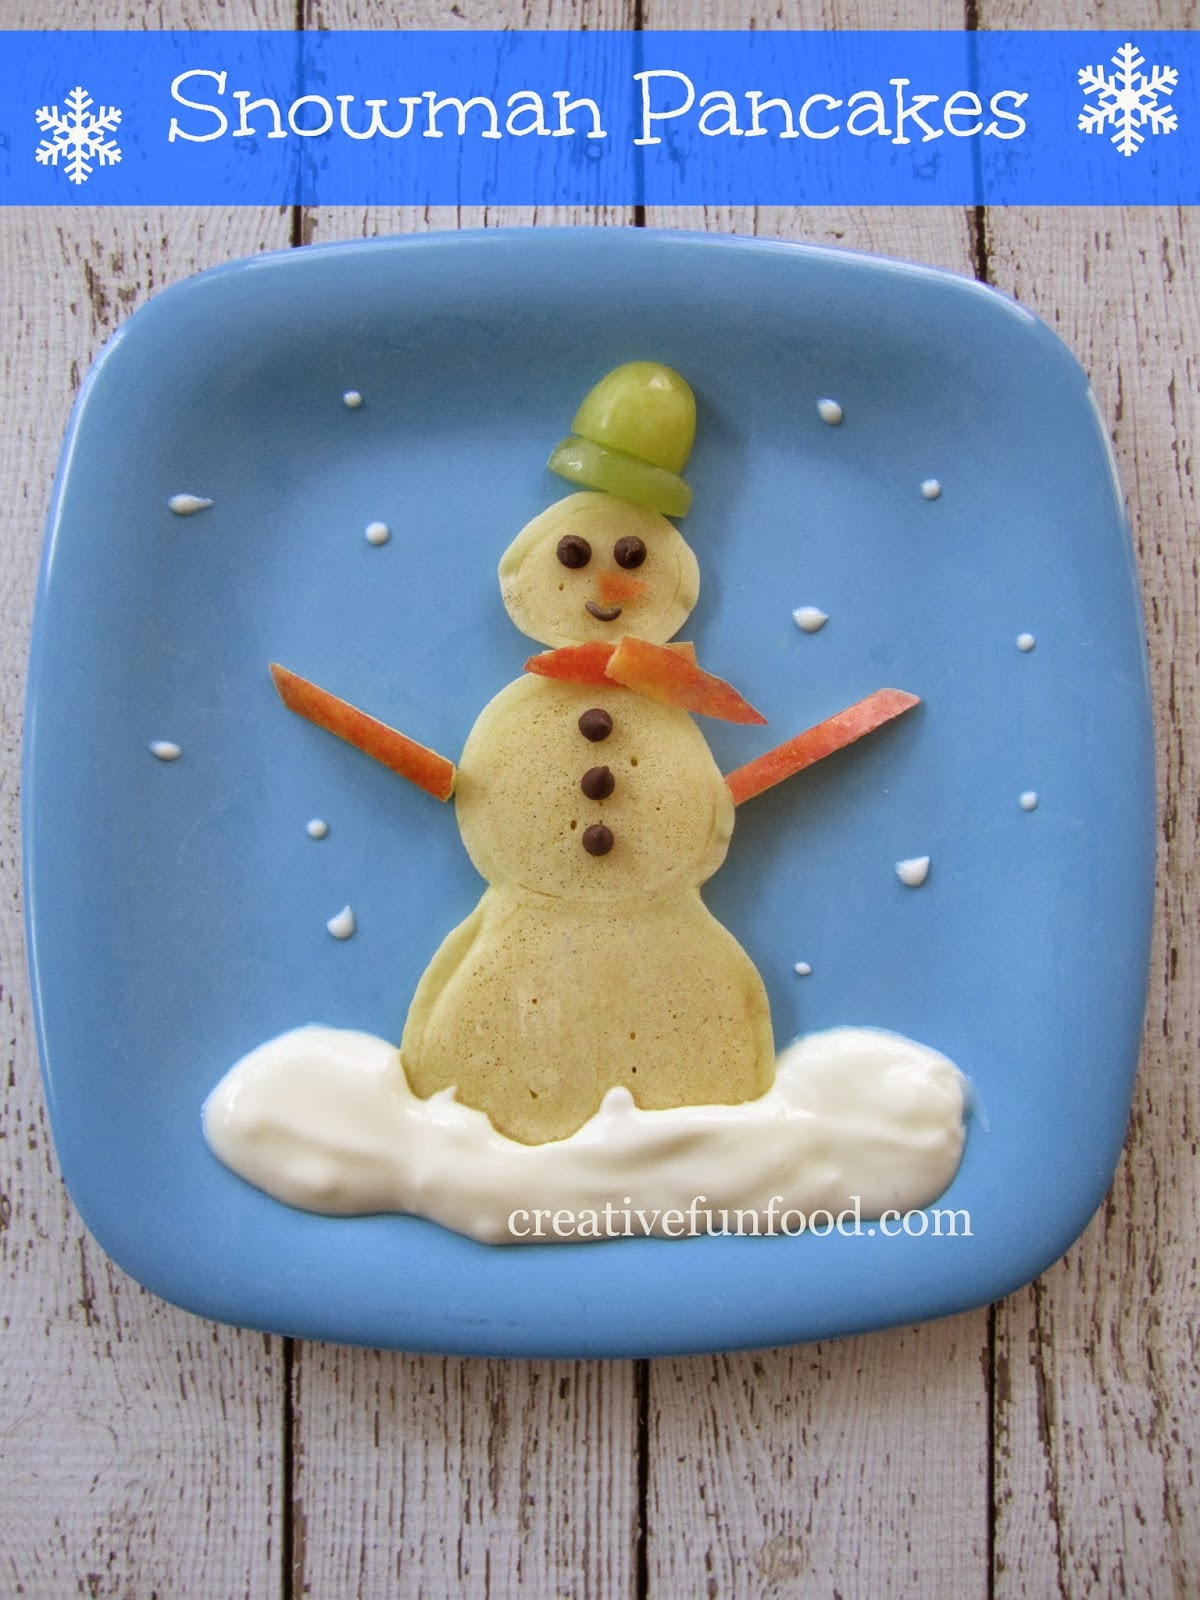 Creative Fun For All Ages With Easy Diy Wall Art Projects: Creative Food: Snowman Pancakes